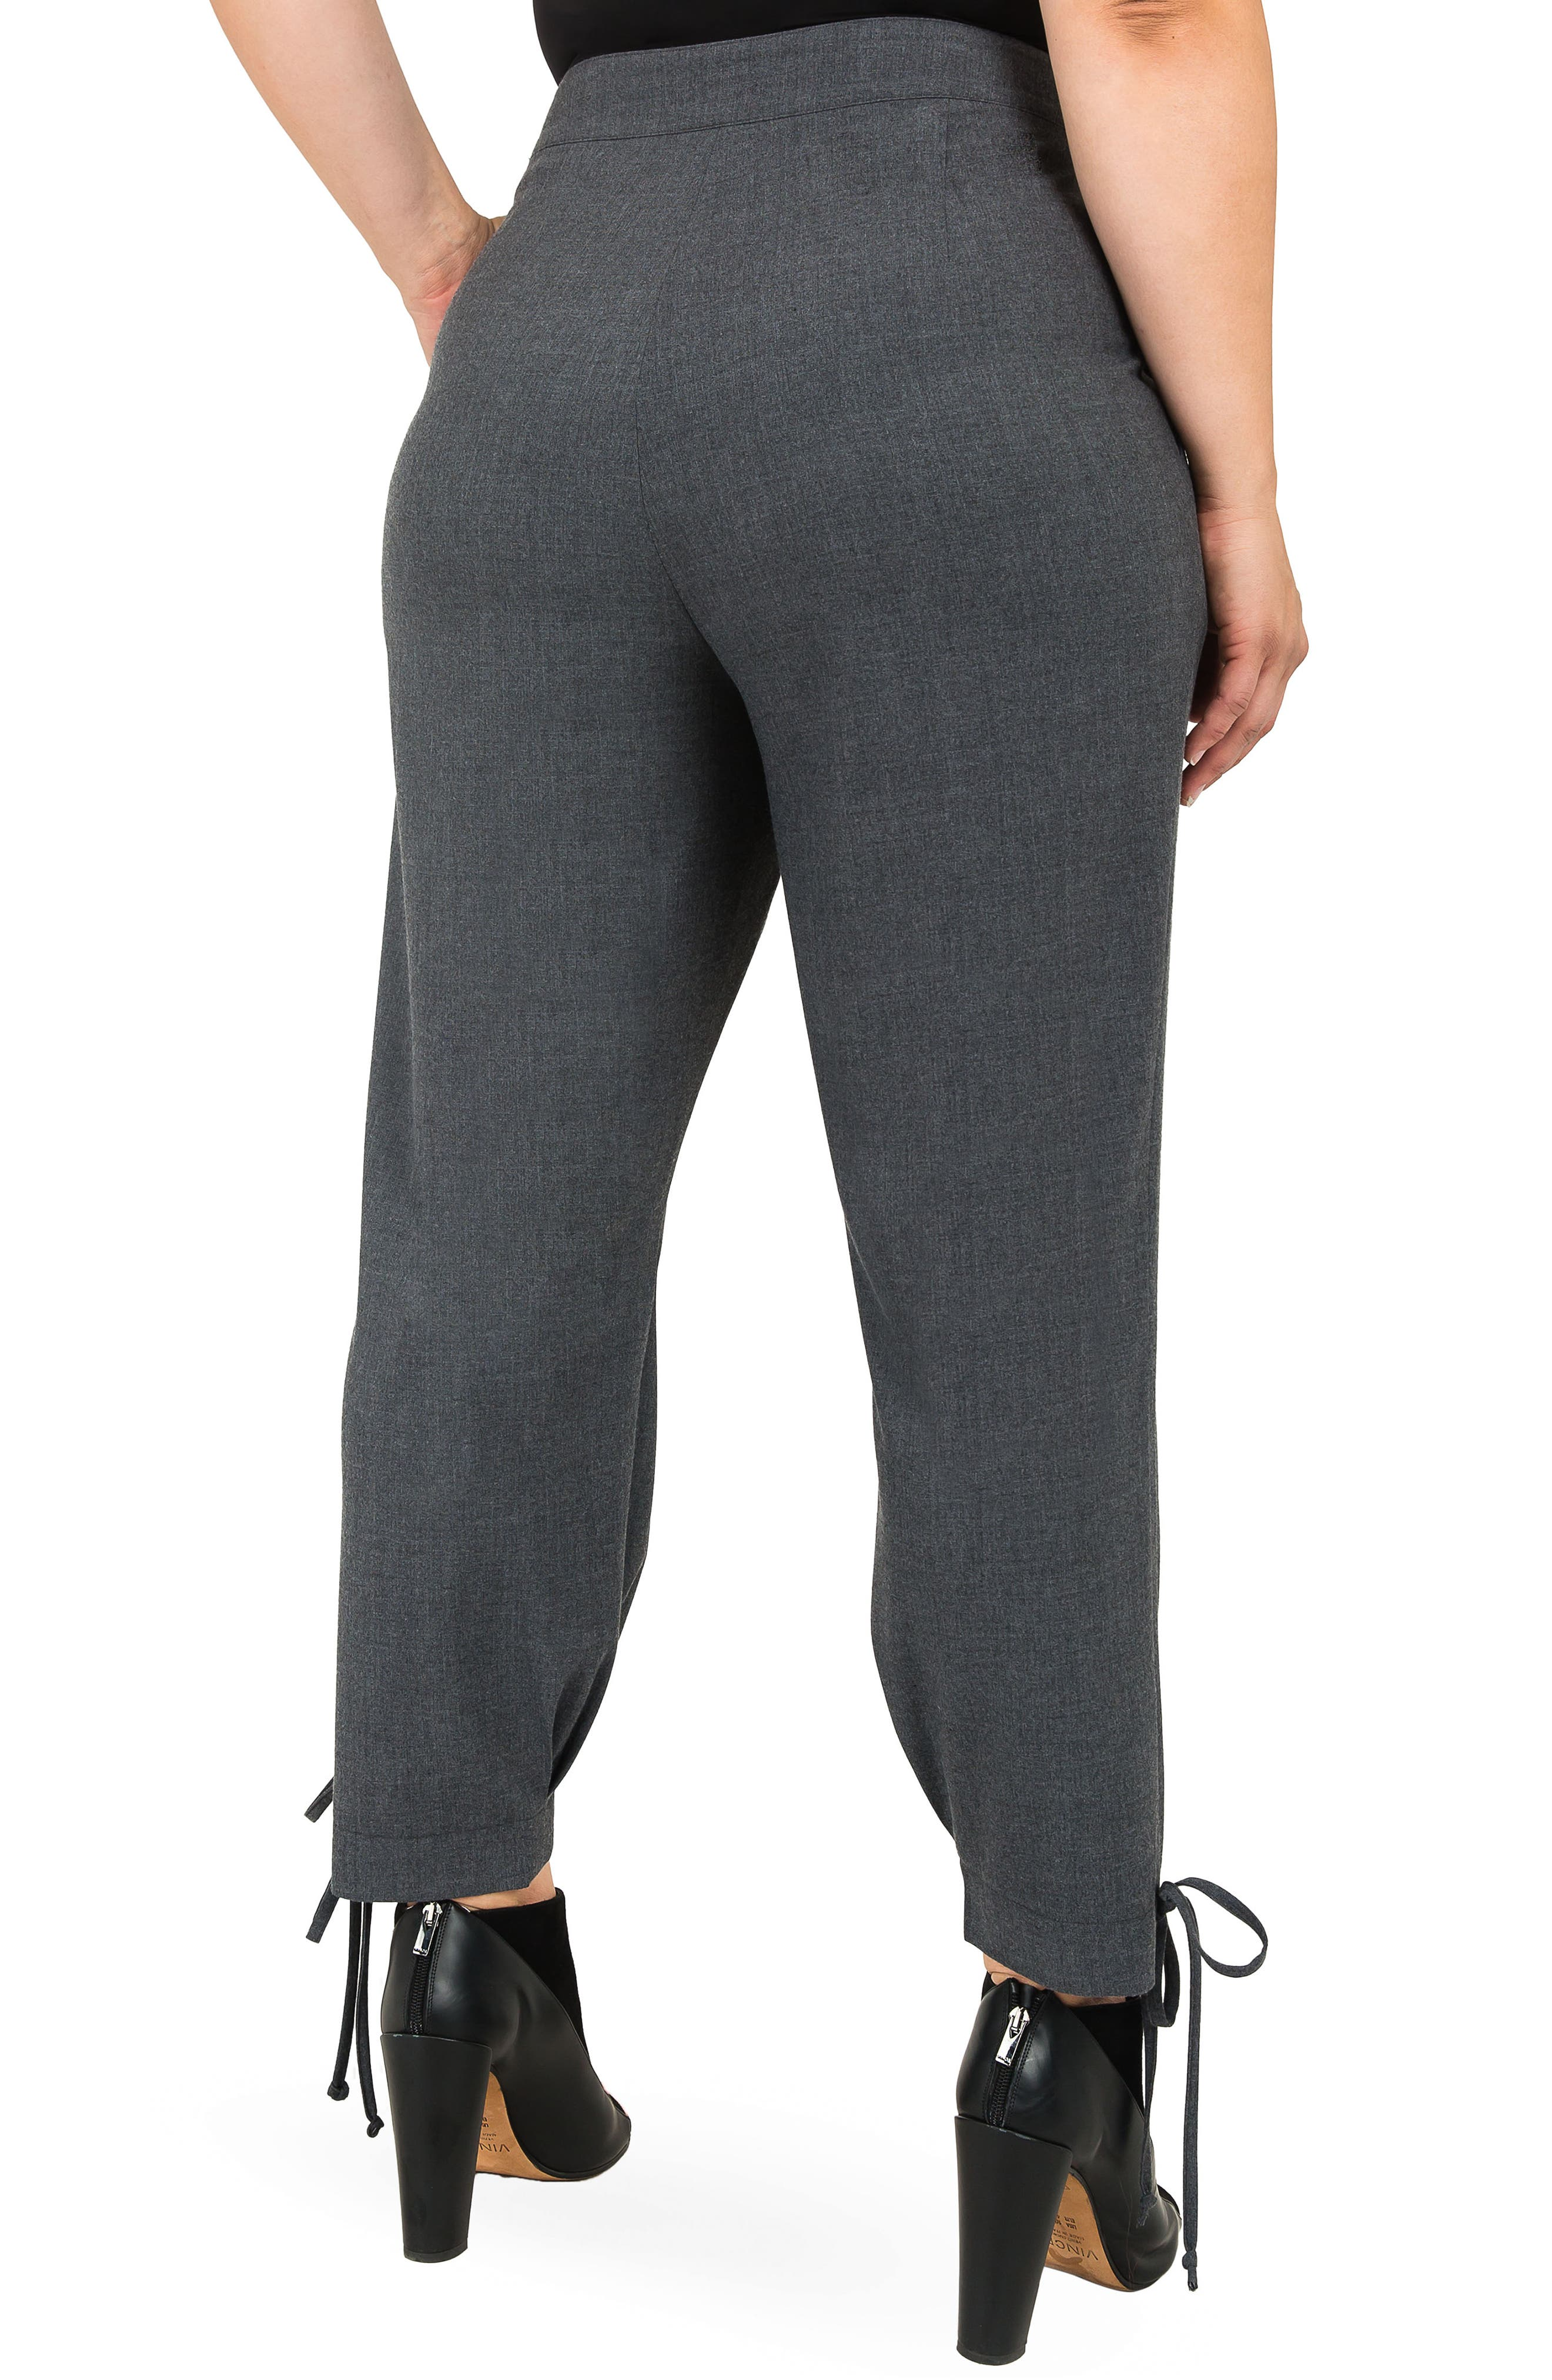 Robie Suiting Skinny Trousers,                             Alternate thumbnail 4, color,                             CHARCOAL